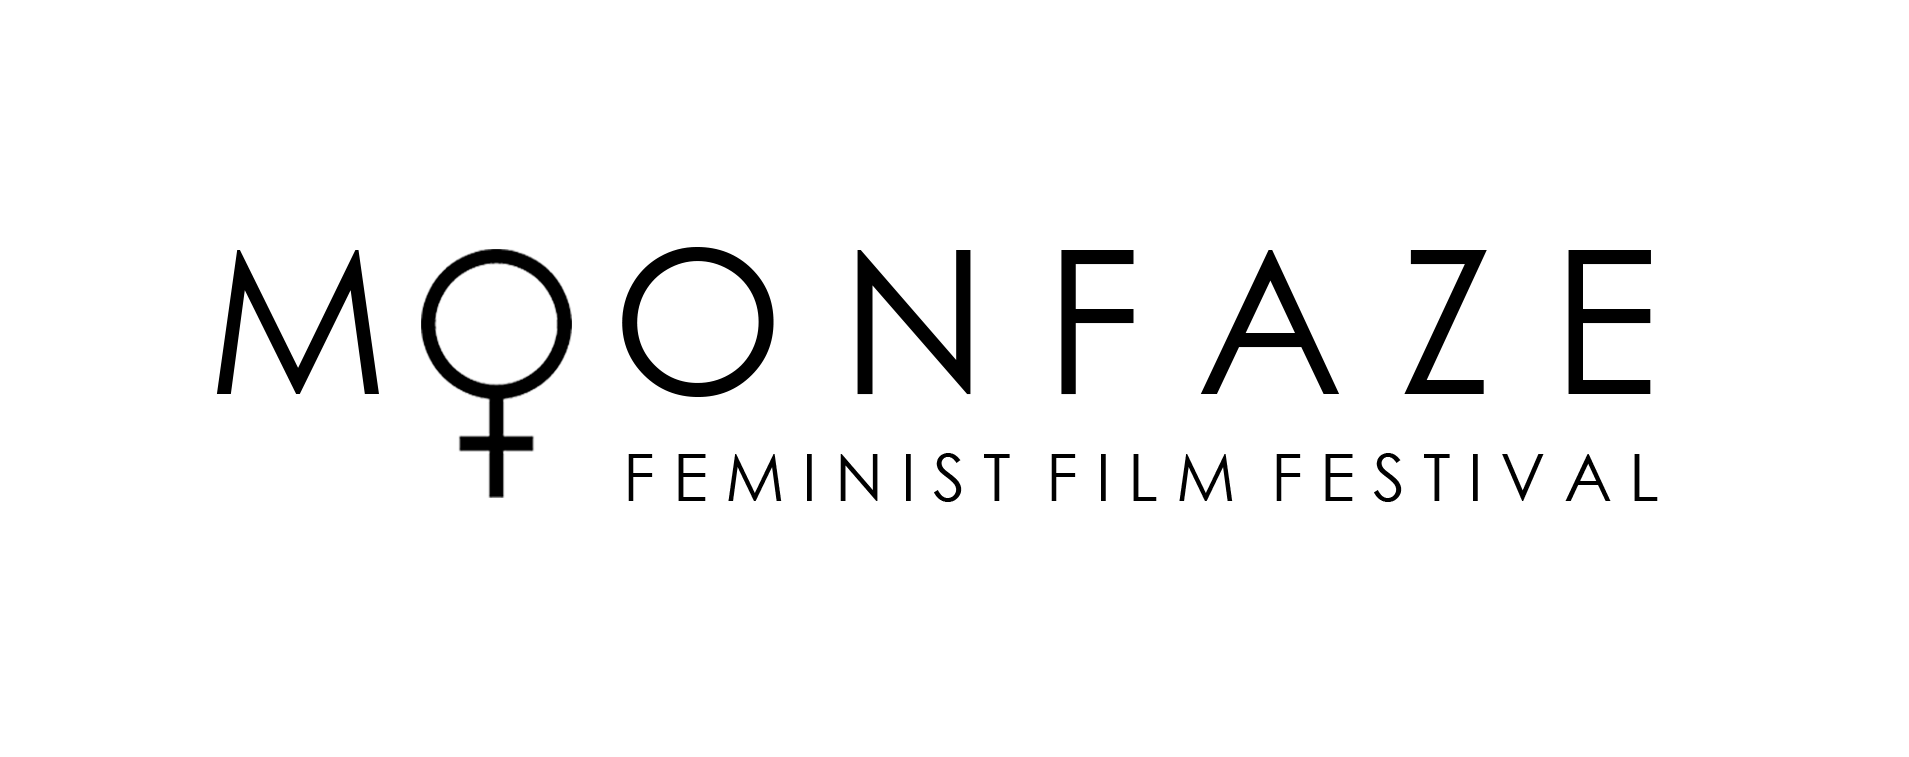 MF_trailer_logo_transparent_BLACK.png